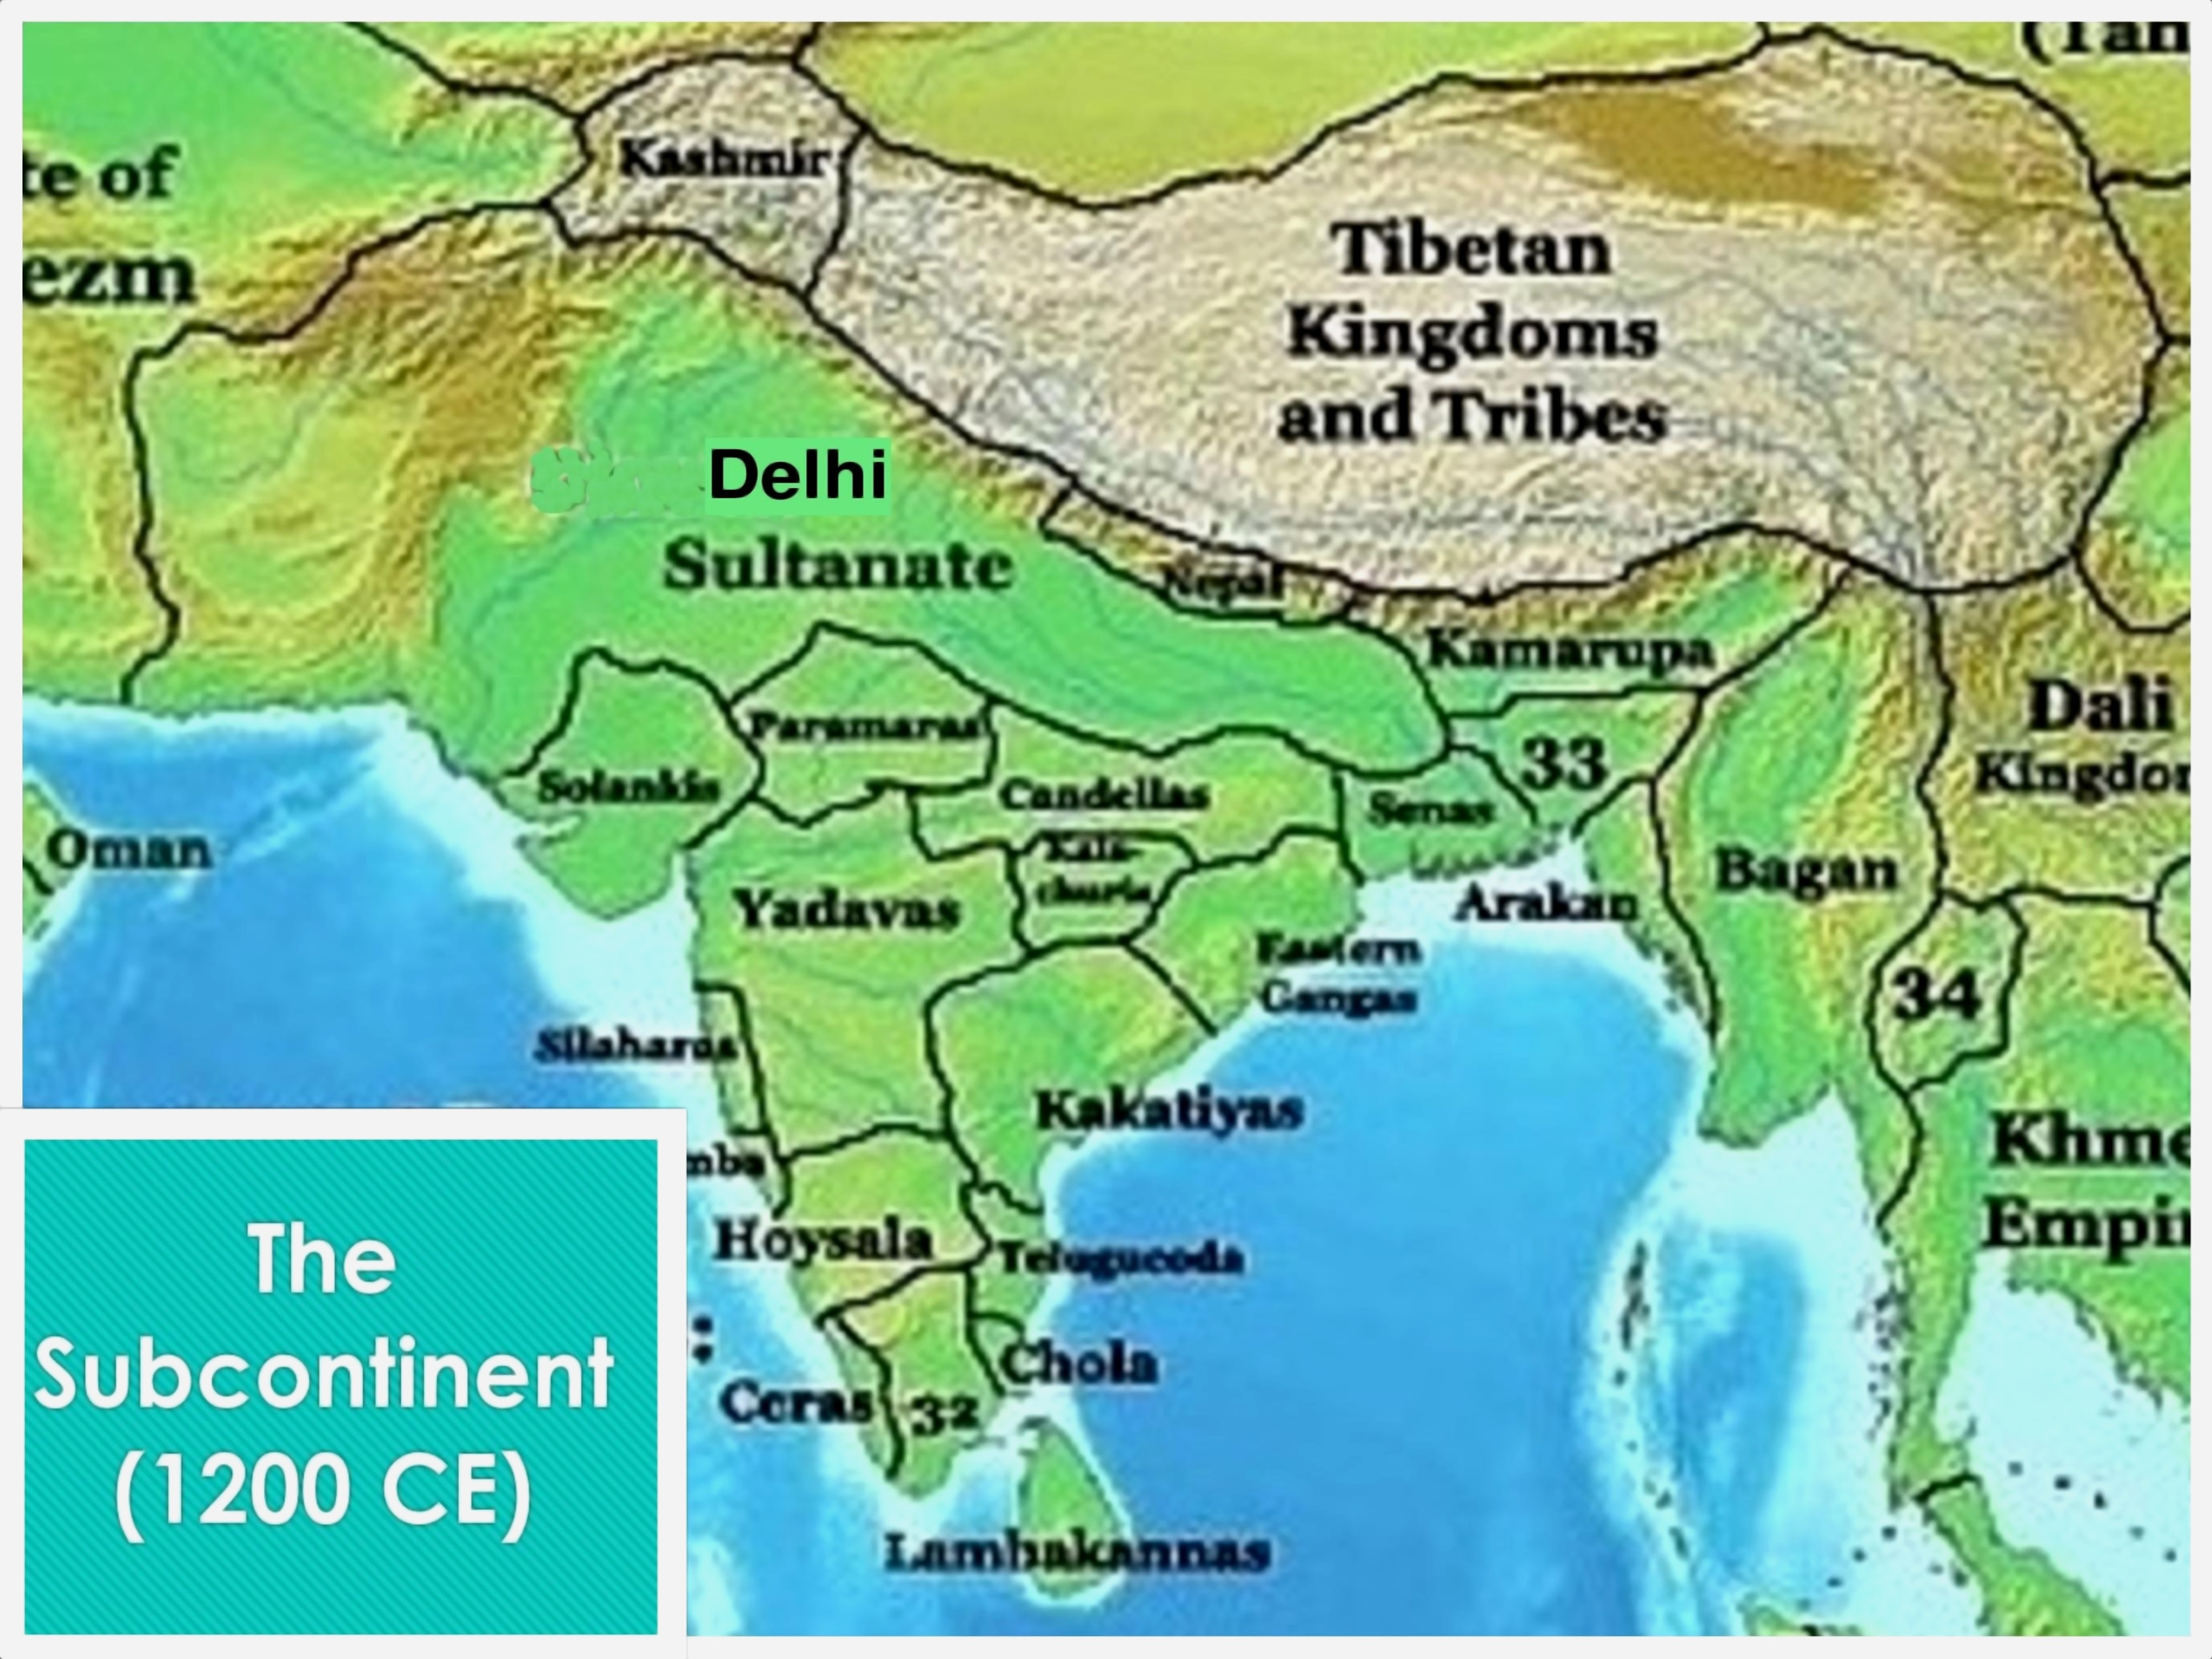 Indian Subcontinent in 1200 CE, showing the Yadava Dynasty and its neighbors